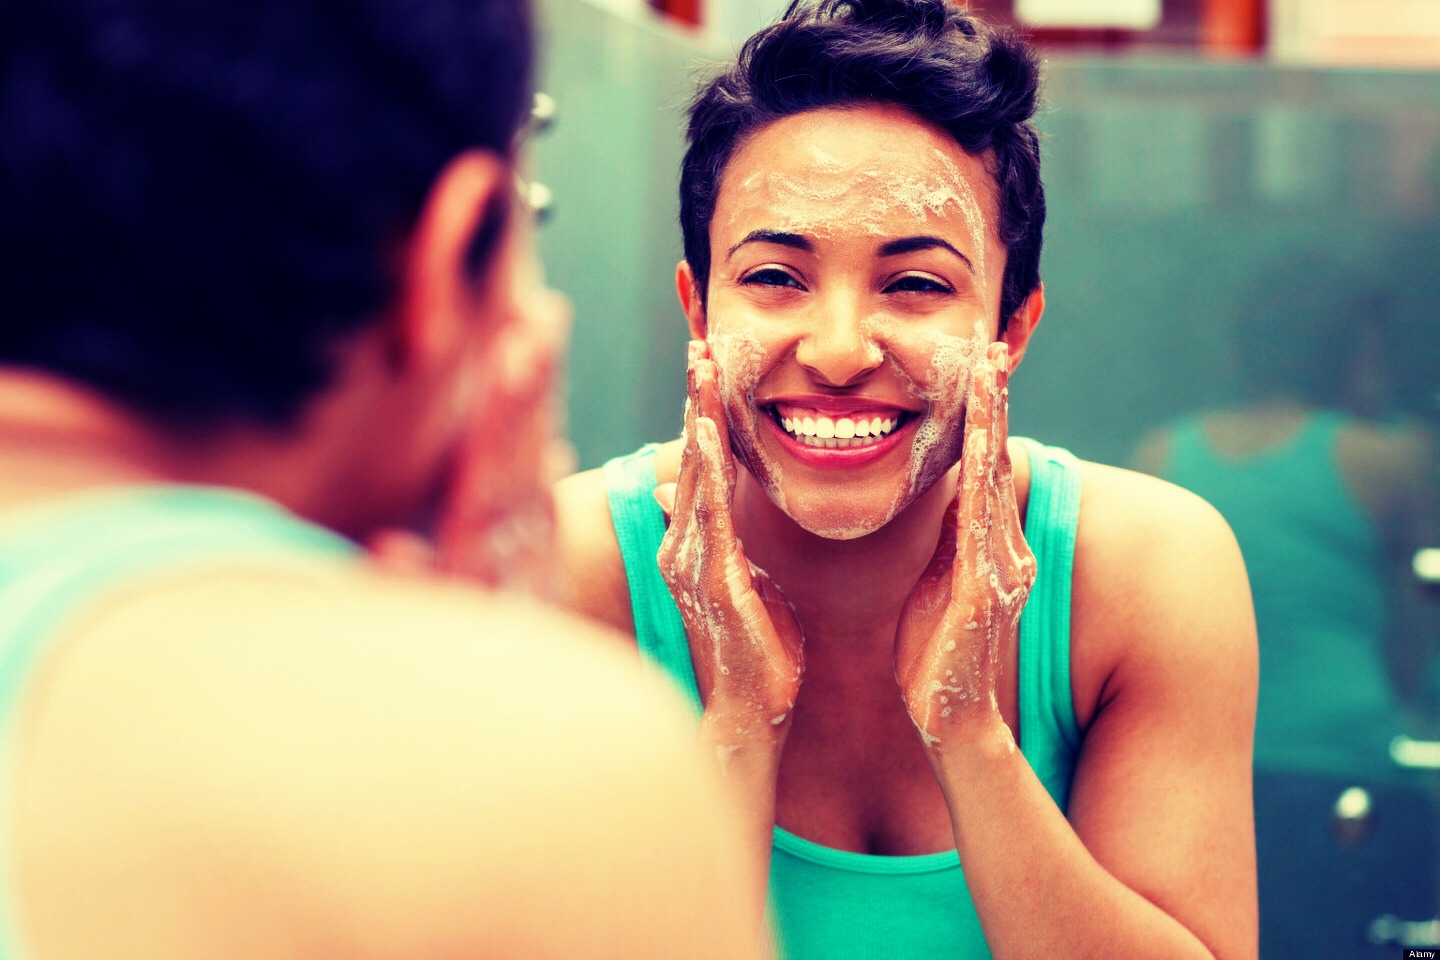 how to avoid getting acne